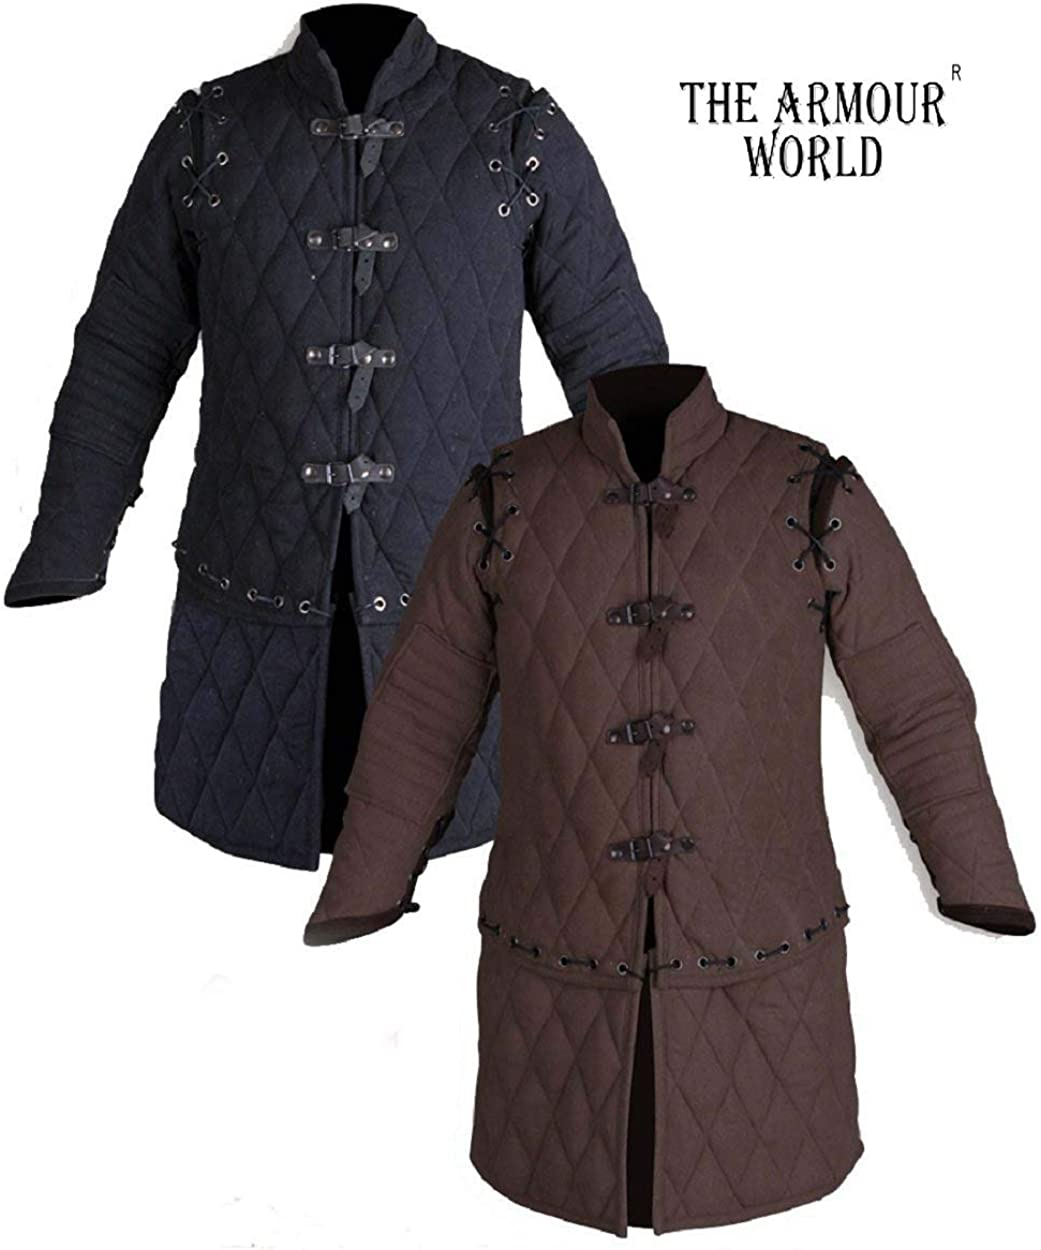 THE ARMOUR WORLD Thick Padded Medieval Gambeson Armor Arming Doublet Theater Costumes Full Sleeves Dress SCA Cotton Fabric Aketon Jacket